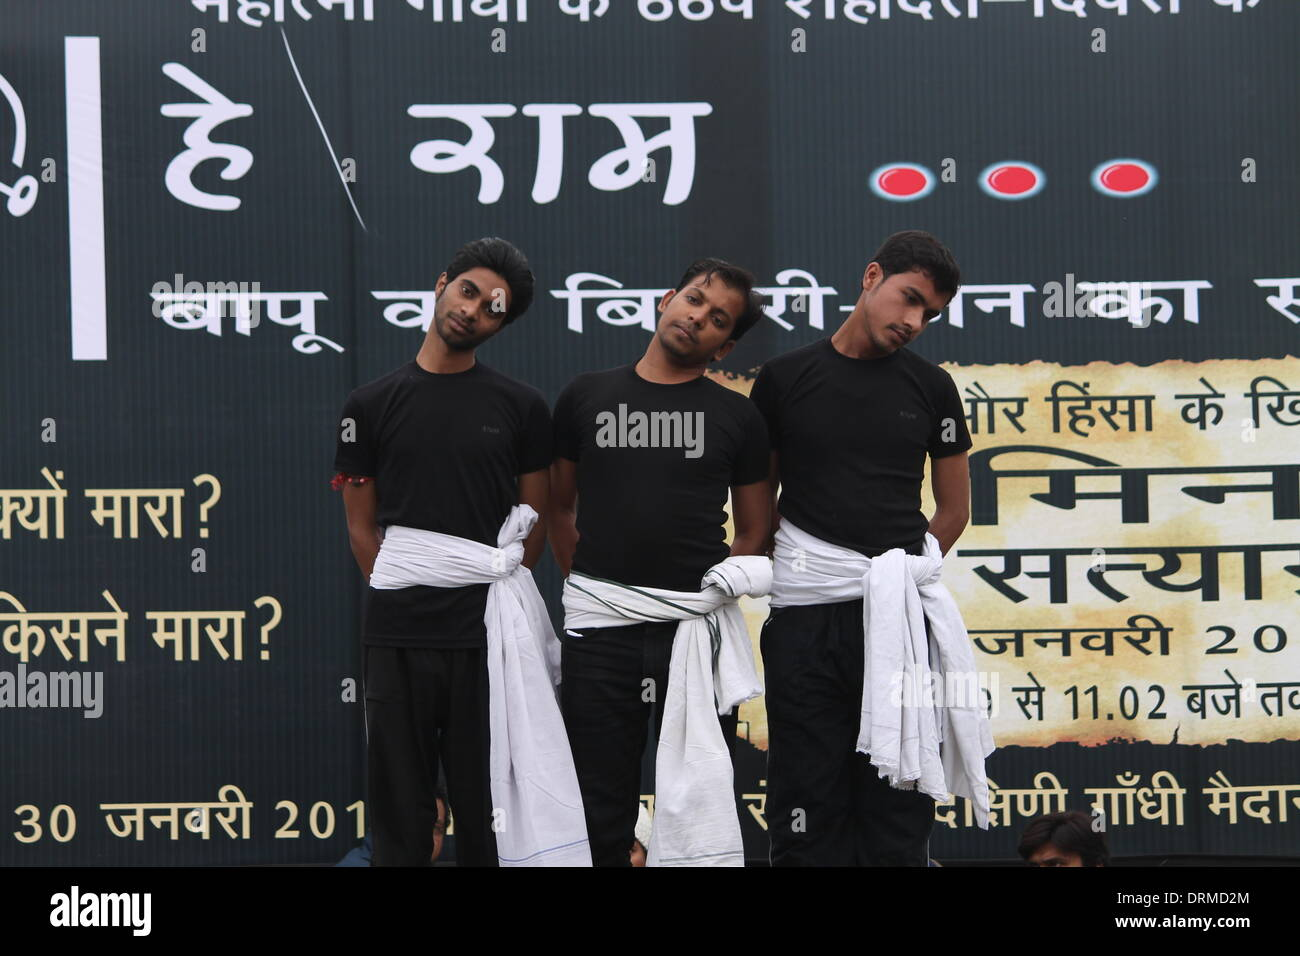 """Gandhi Maidan, Patna, Bihar, India, 29th January 2014. Artists belong to Bharatiya Jananatya Sanghya perform drama """"Mahatma Gandhi ko Chithhi paunche"""" (Letter to Mahatma Gandhi)  in open stage on Wednesday afternoon, a day before  the occasion of 67th death anniversary of Mahatma Gandhi on January 30, 2014. The play touched upon role of Nathuram Godse in death of Gandhi. Various such programs will be performed all over Bihar during these two days to commemorate Gandhi. Credit:  Rupa Ghosh/Alamy Live News. - Stock Image"""